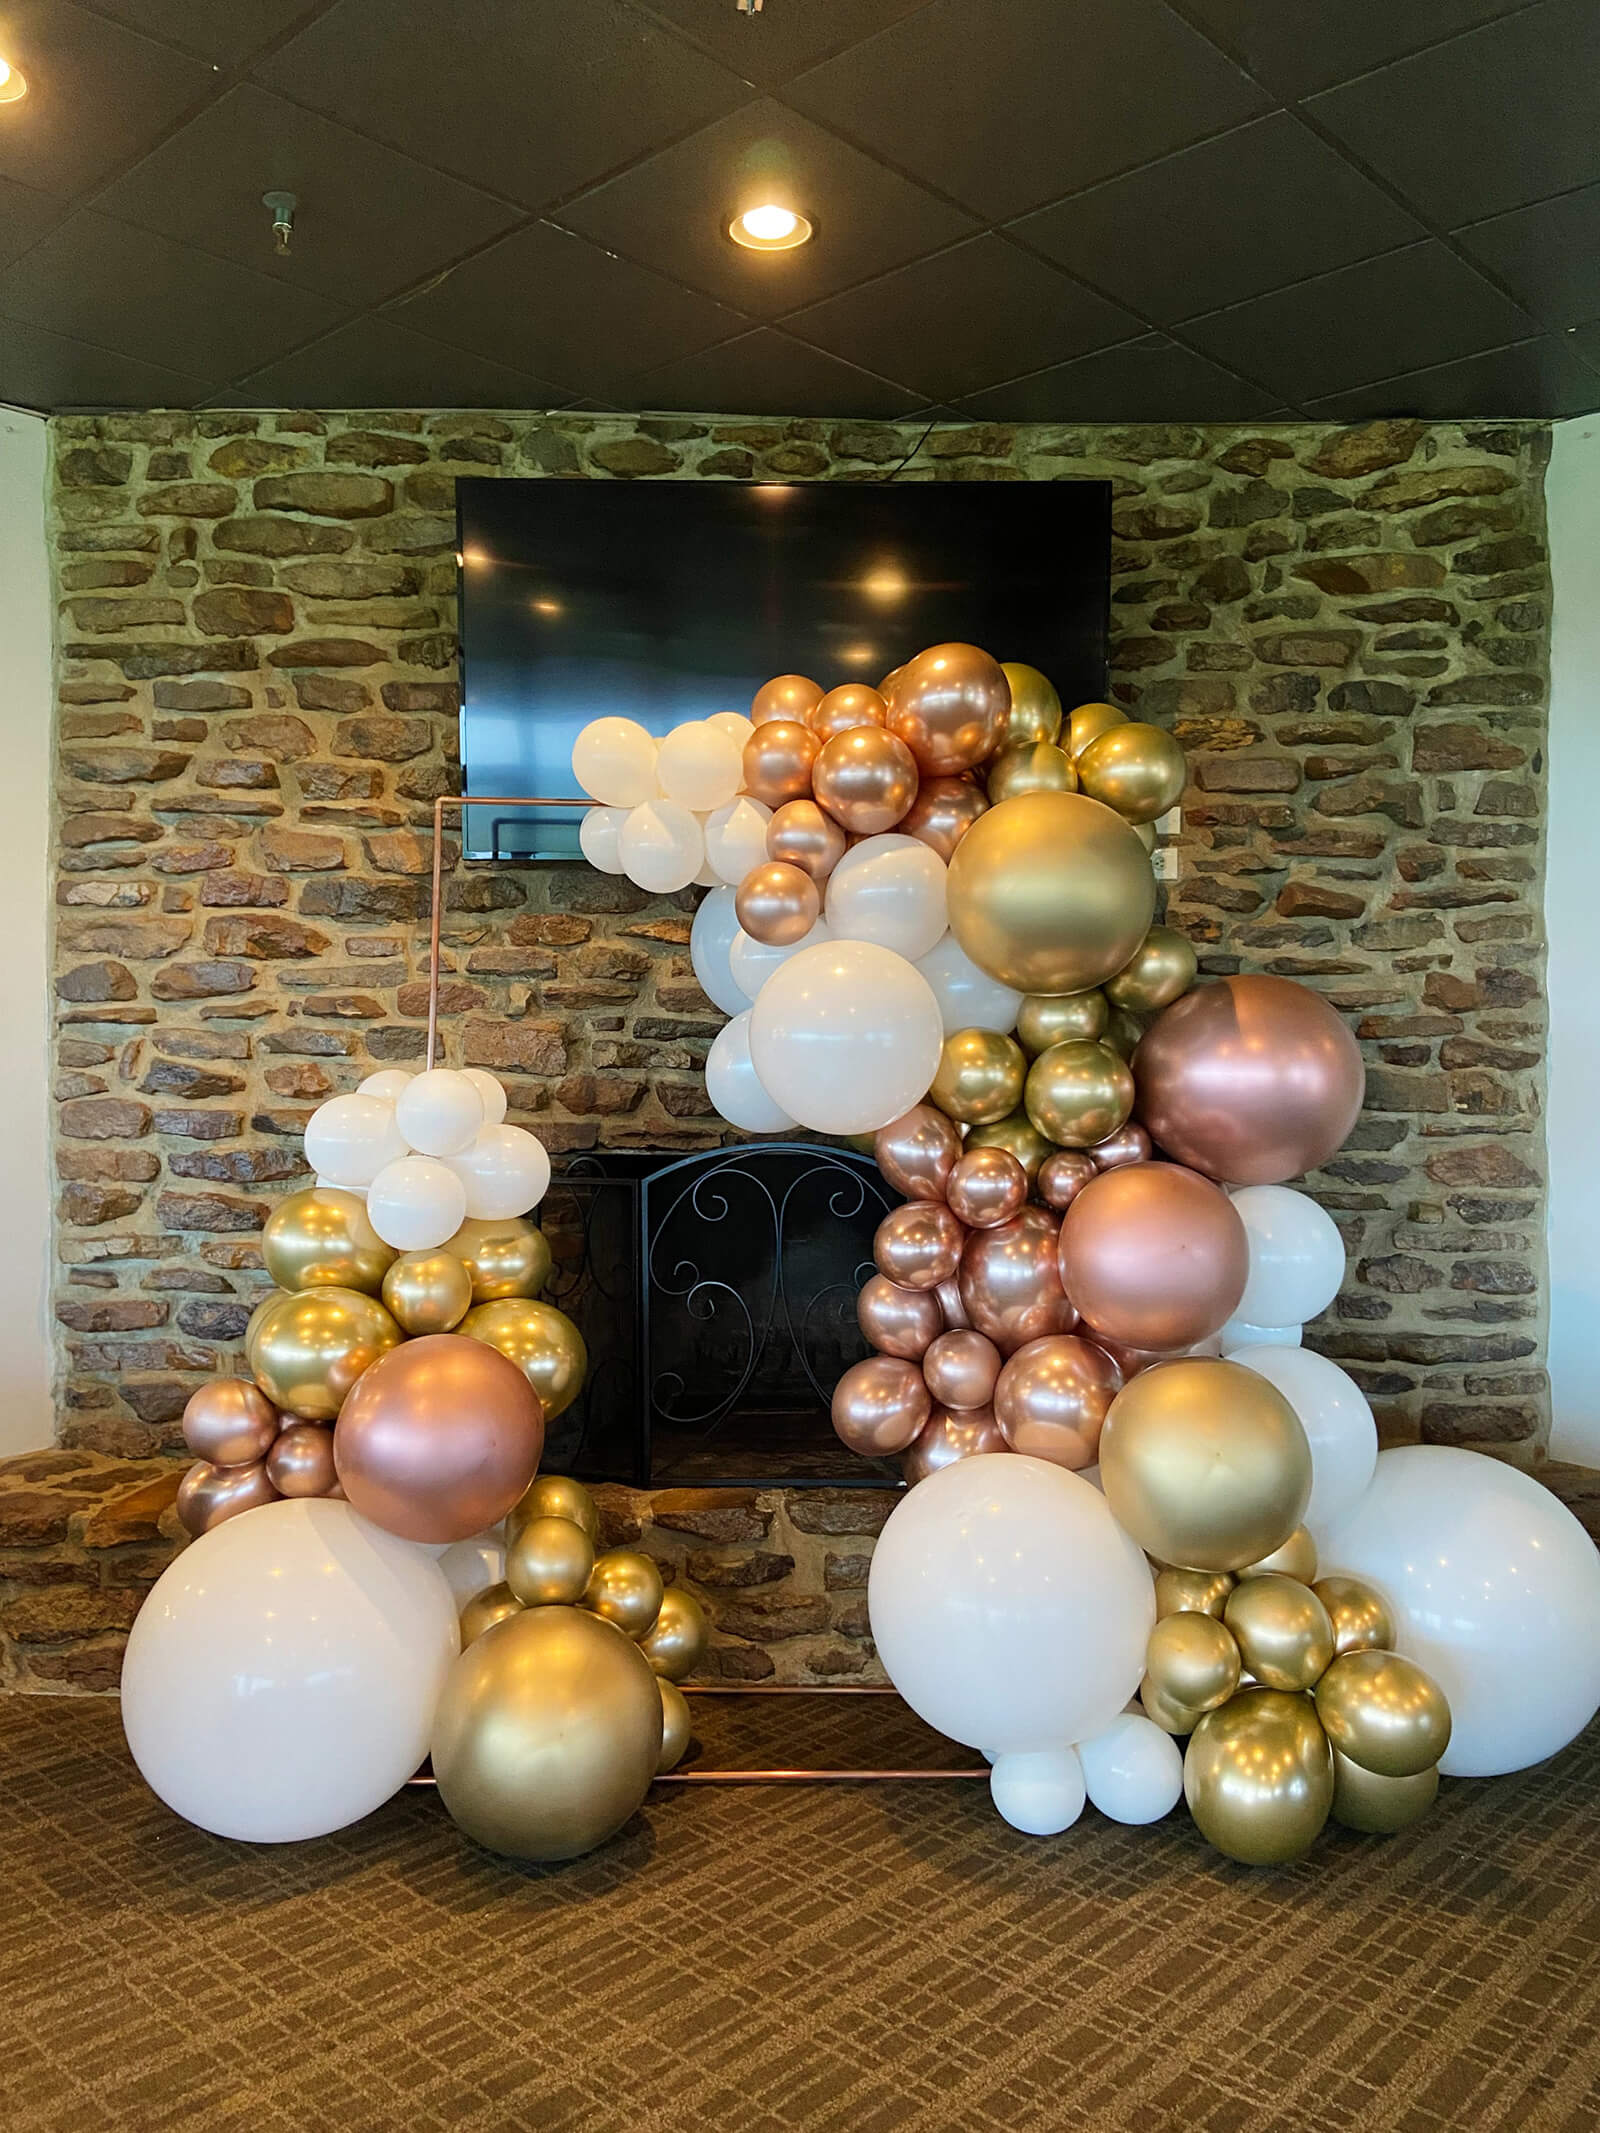 Just Peachy rents backdrops, like this large rectangle copper stand with balloons, for weddings and parties in central Arkansas.